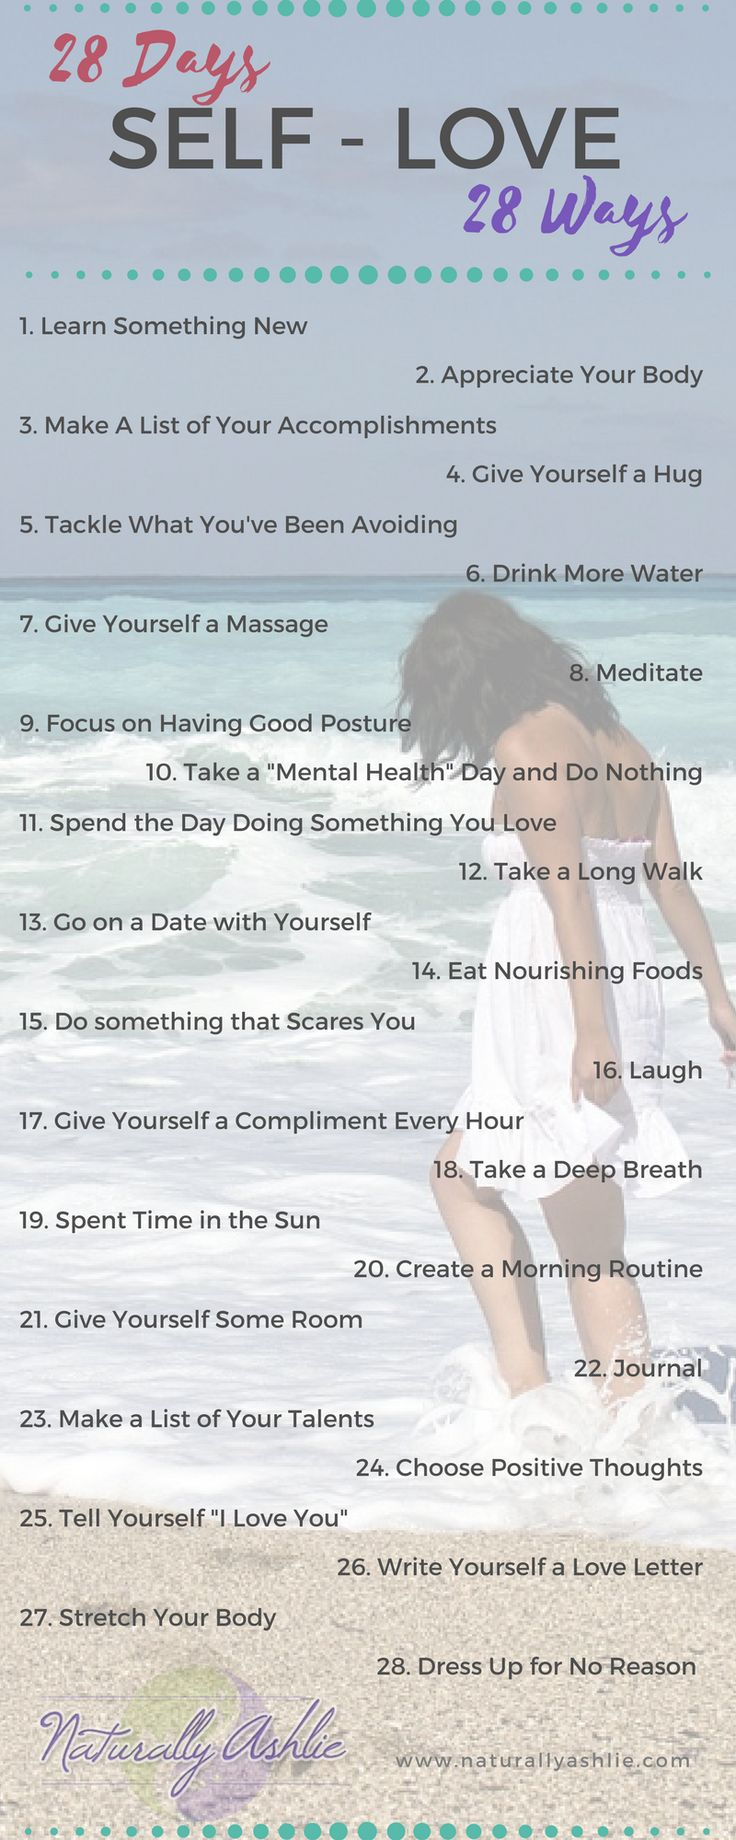 [FREE CHALLENGE] 28 Ways to practice self-love and a free 5 day challenge